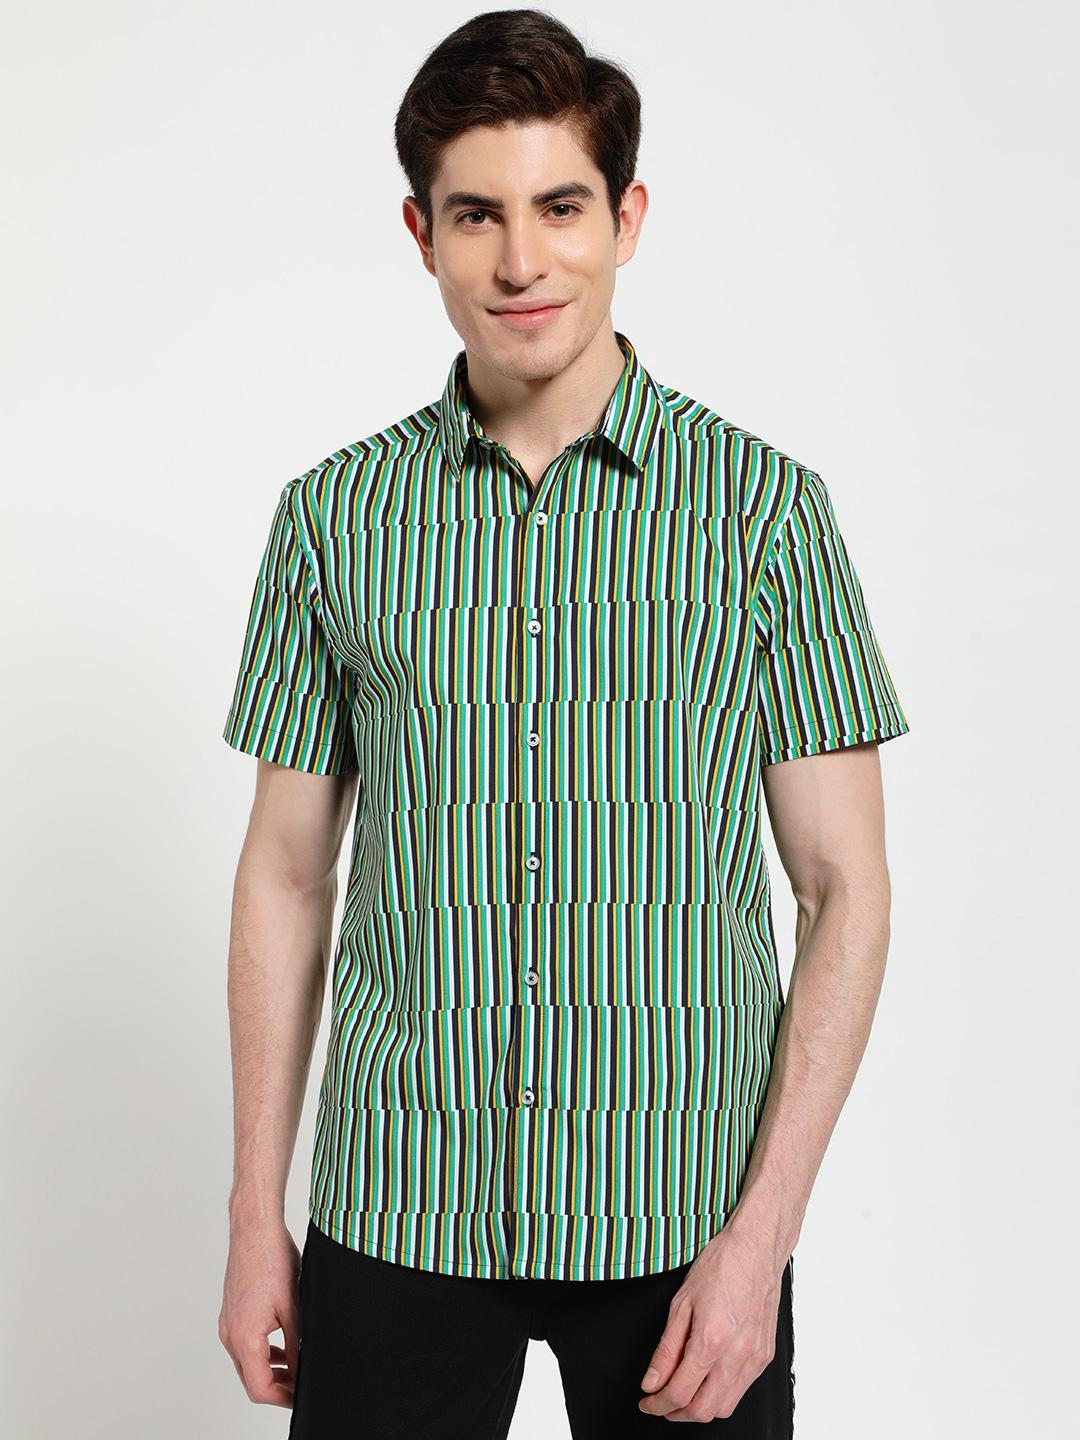 TRUE RUG Multi Broken Vertical Stripe Print Shirt 1